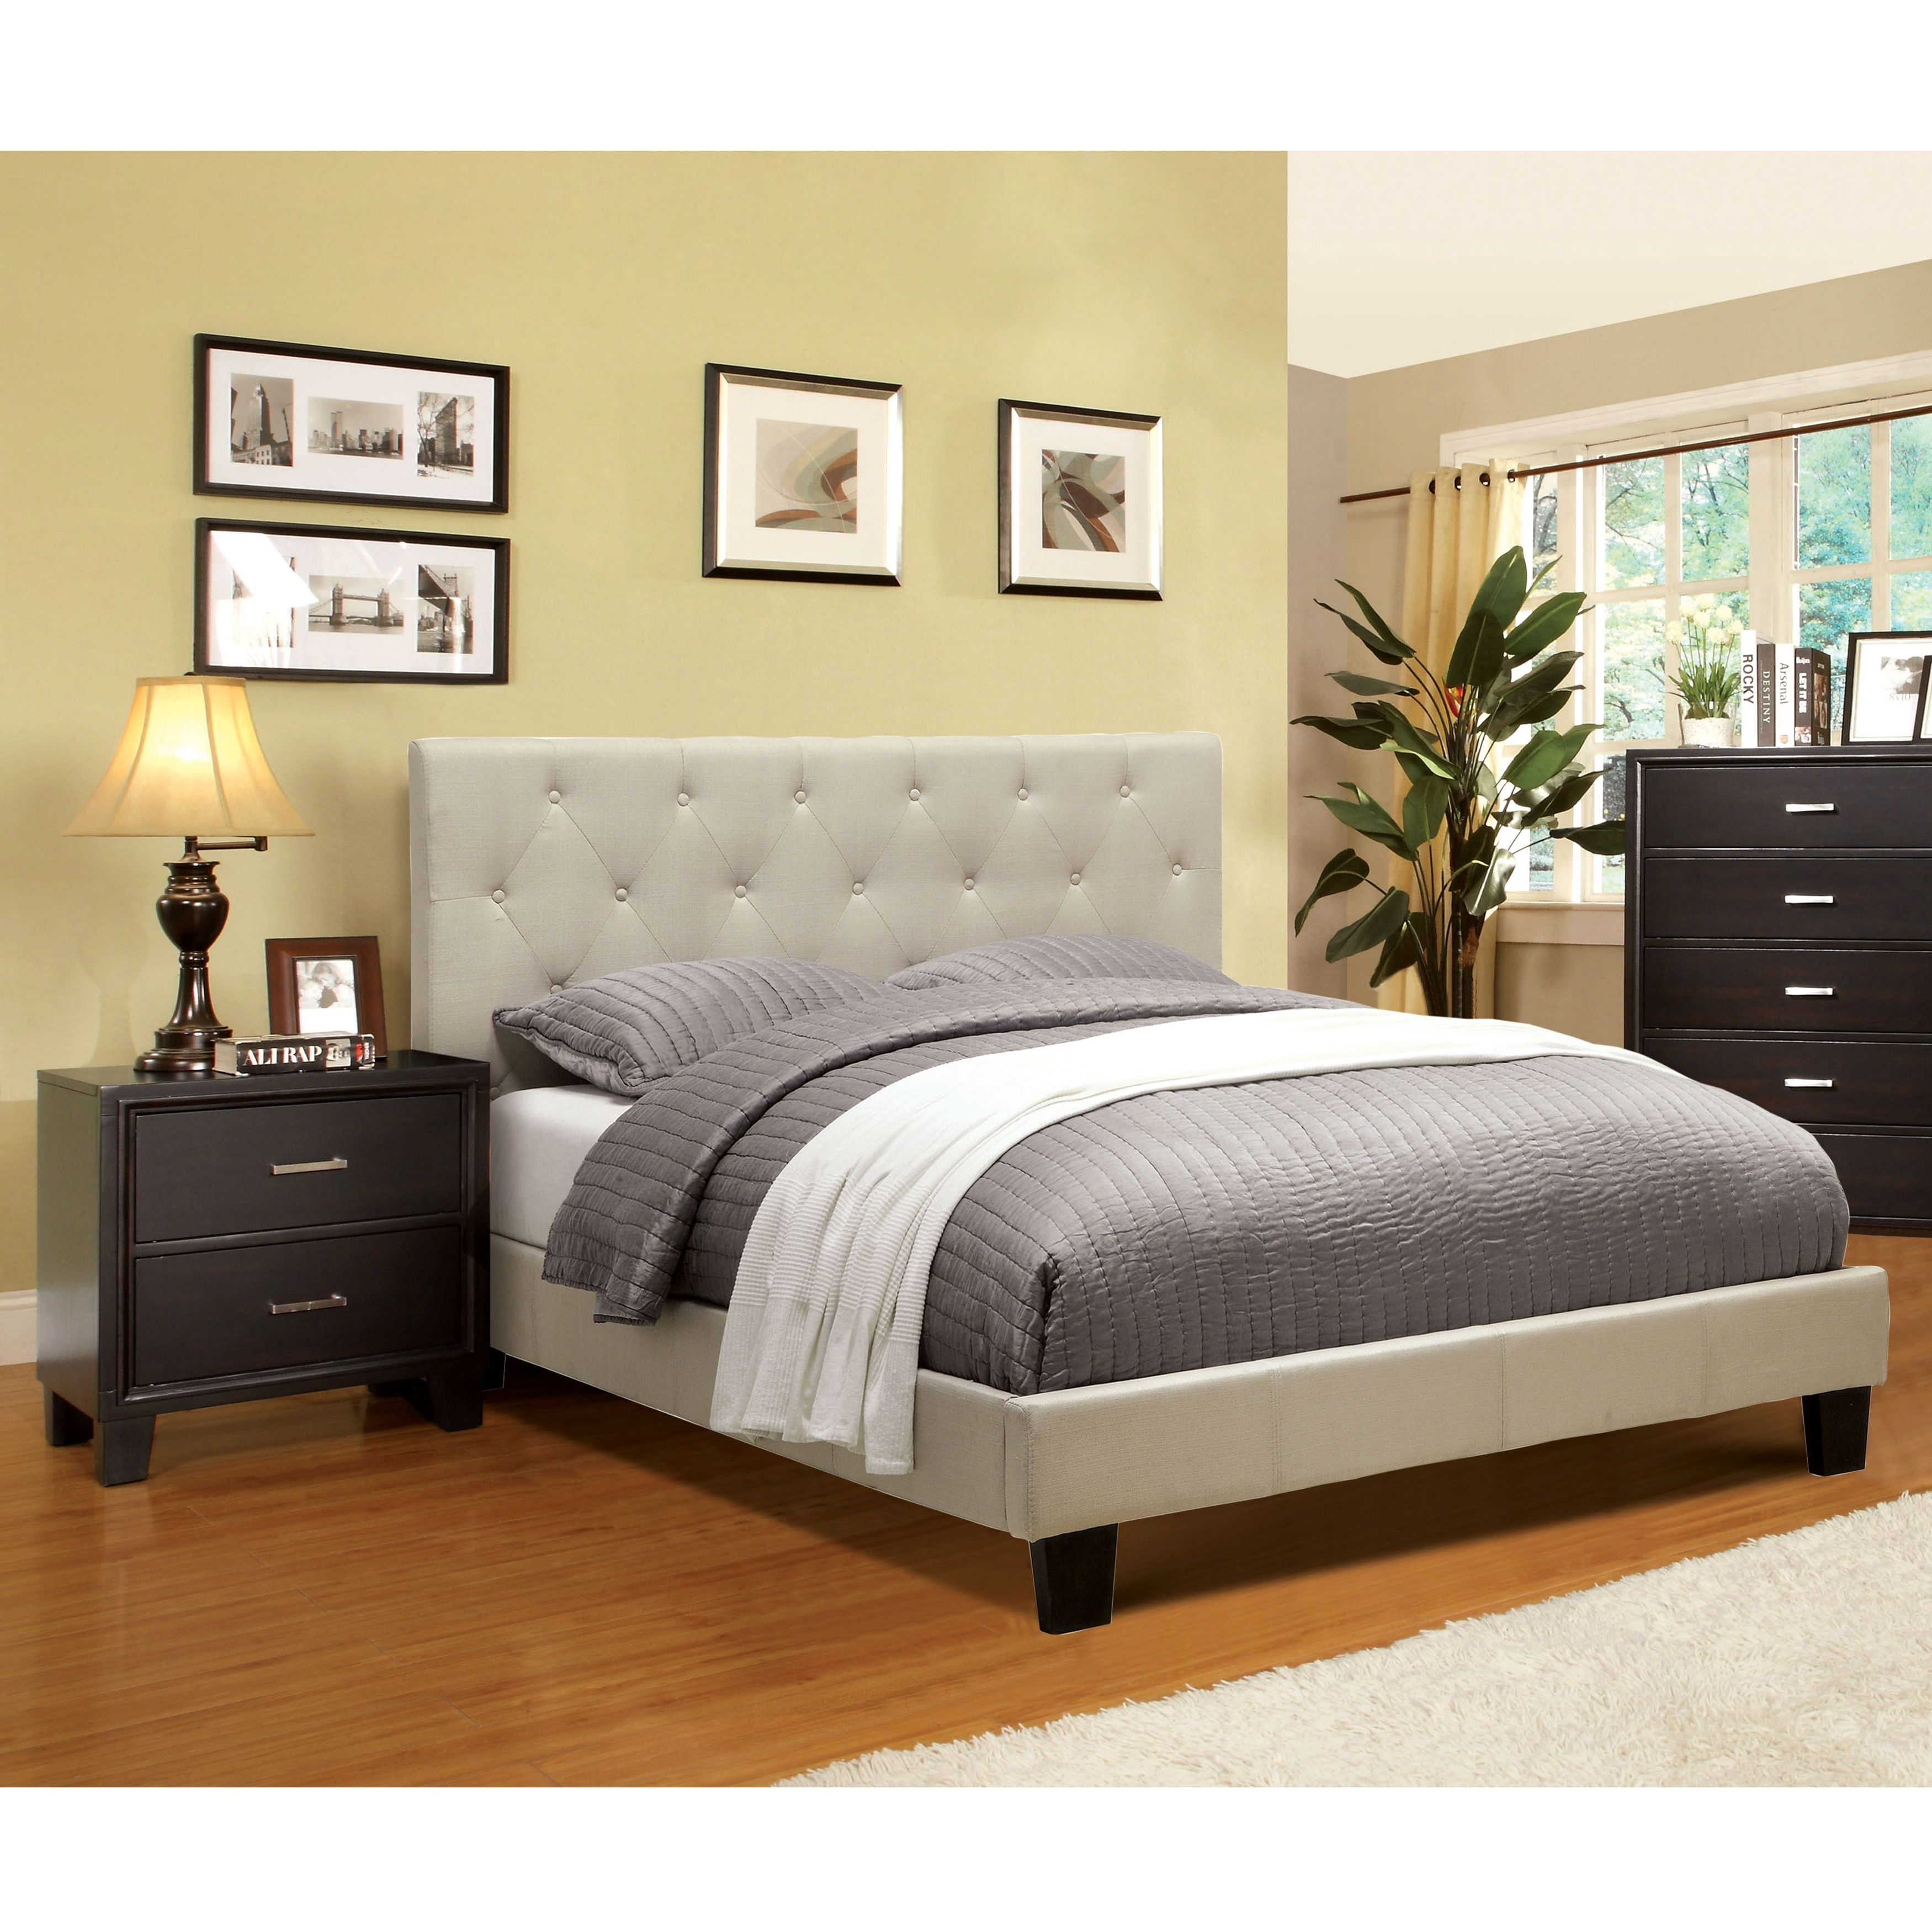 Furniture Of America Perdella 2 Piece Ivory Low Profile Bedroom Set 2 Drawer